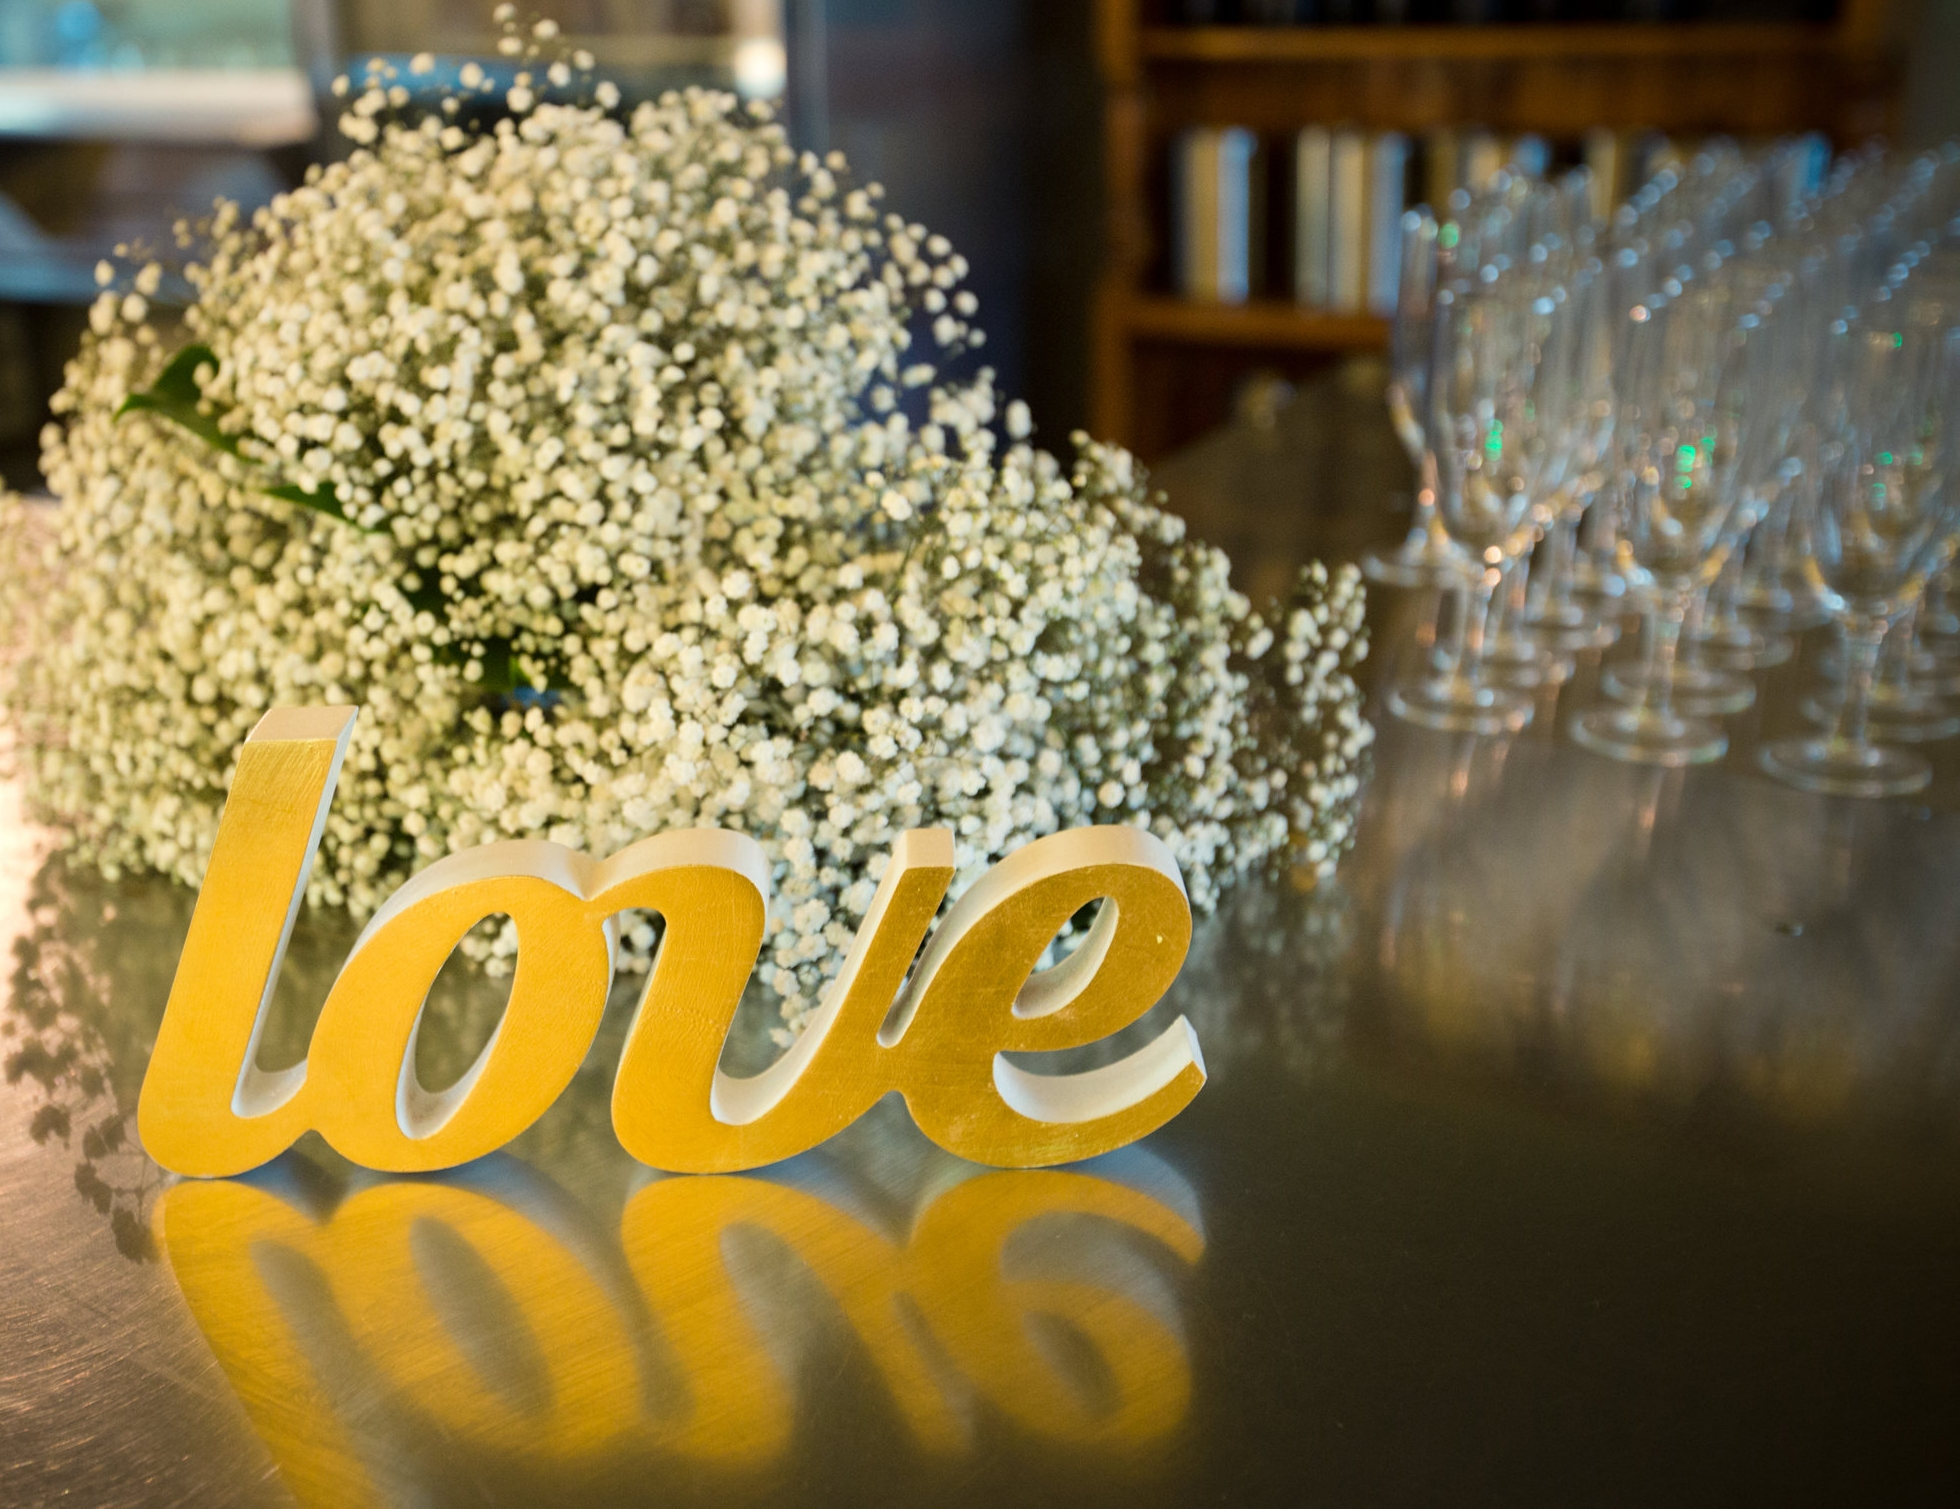 Make your Special day one to remember at Green hills Hotel - When you walk into a building you know straight away if you like it or not . The perfect wedding or function day needs that special something and we have it. Old world charm mixed with character and warmth that spraeds to all that enter . Call us to find out more.